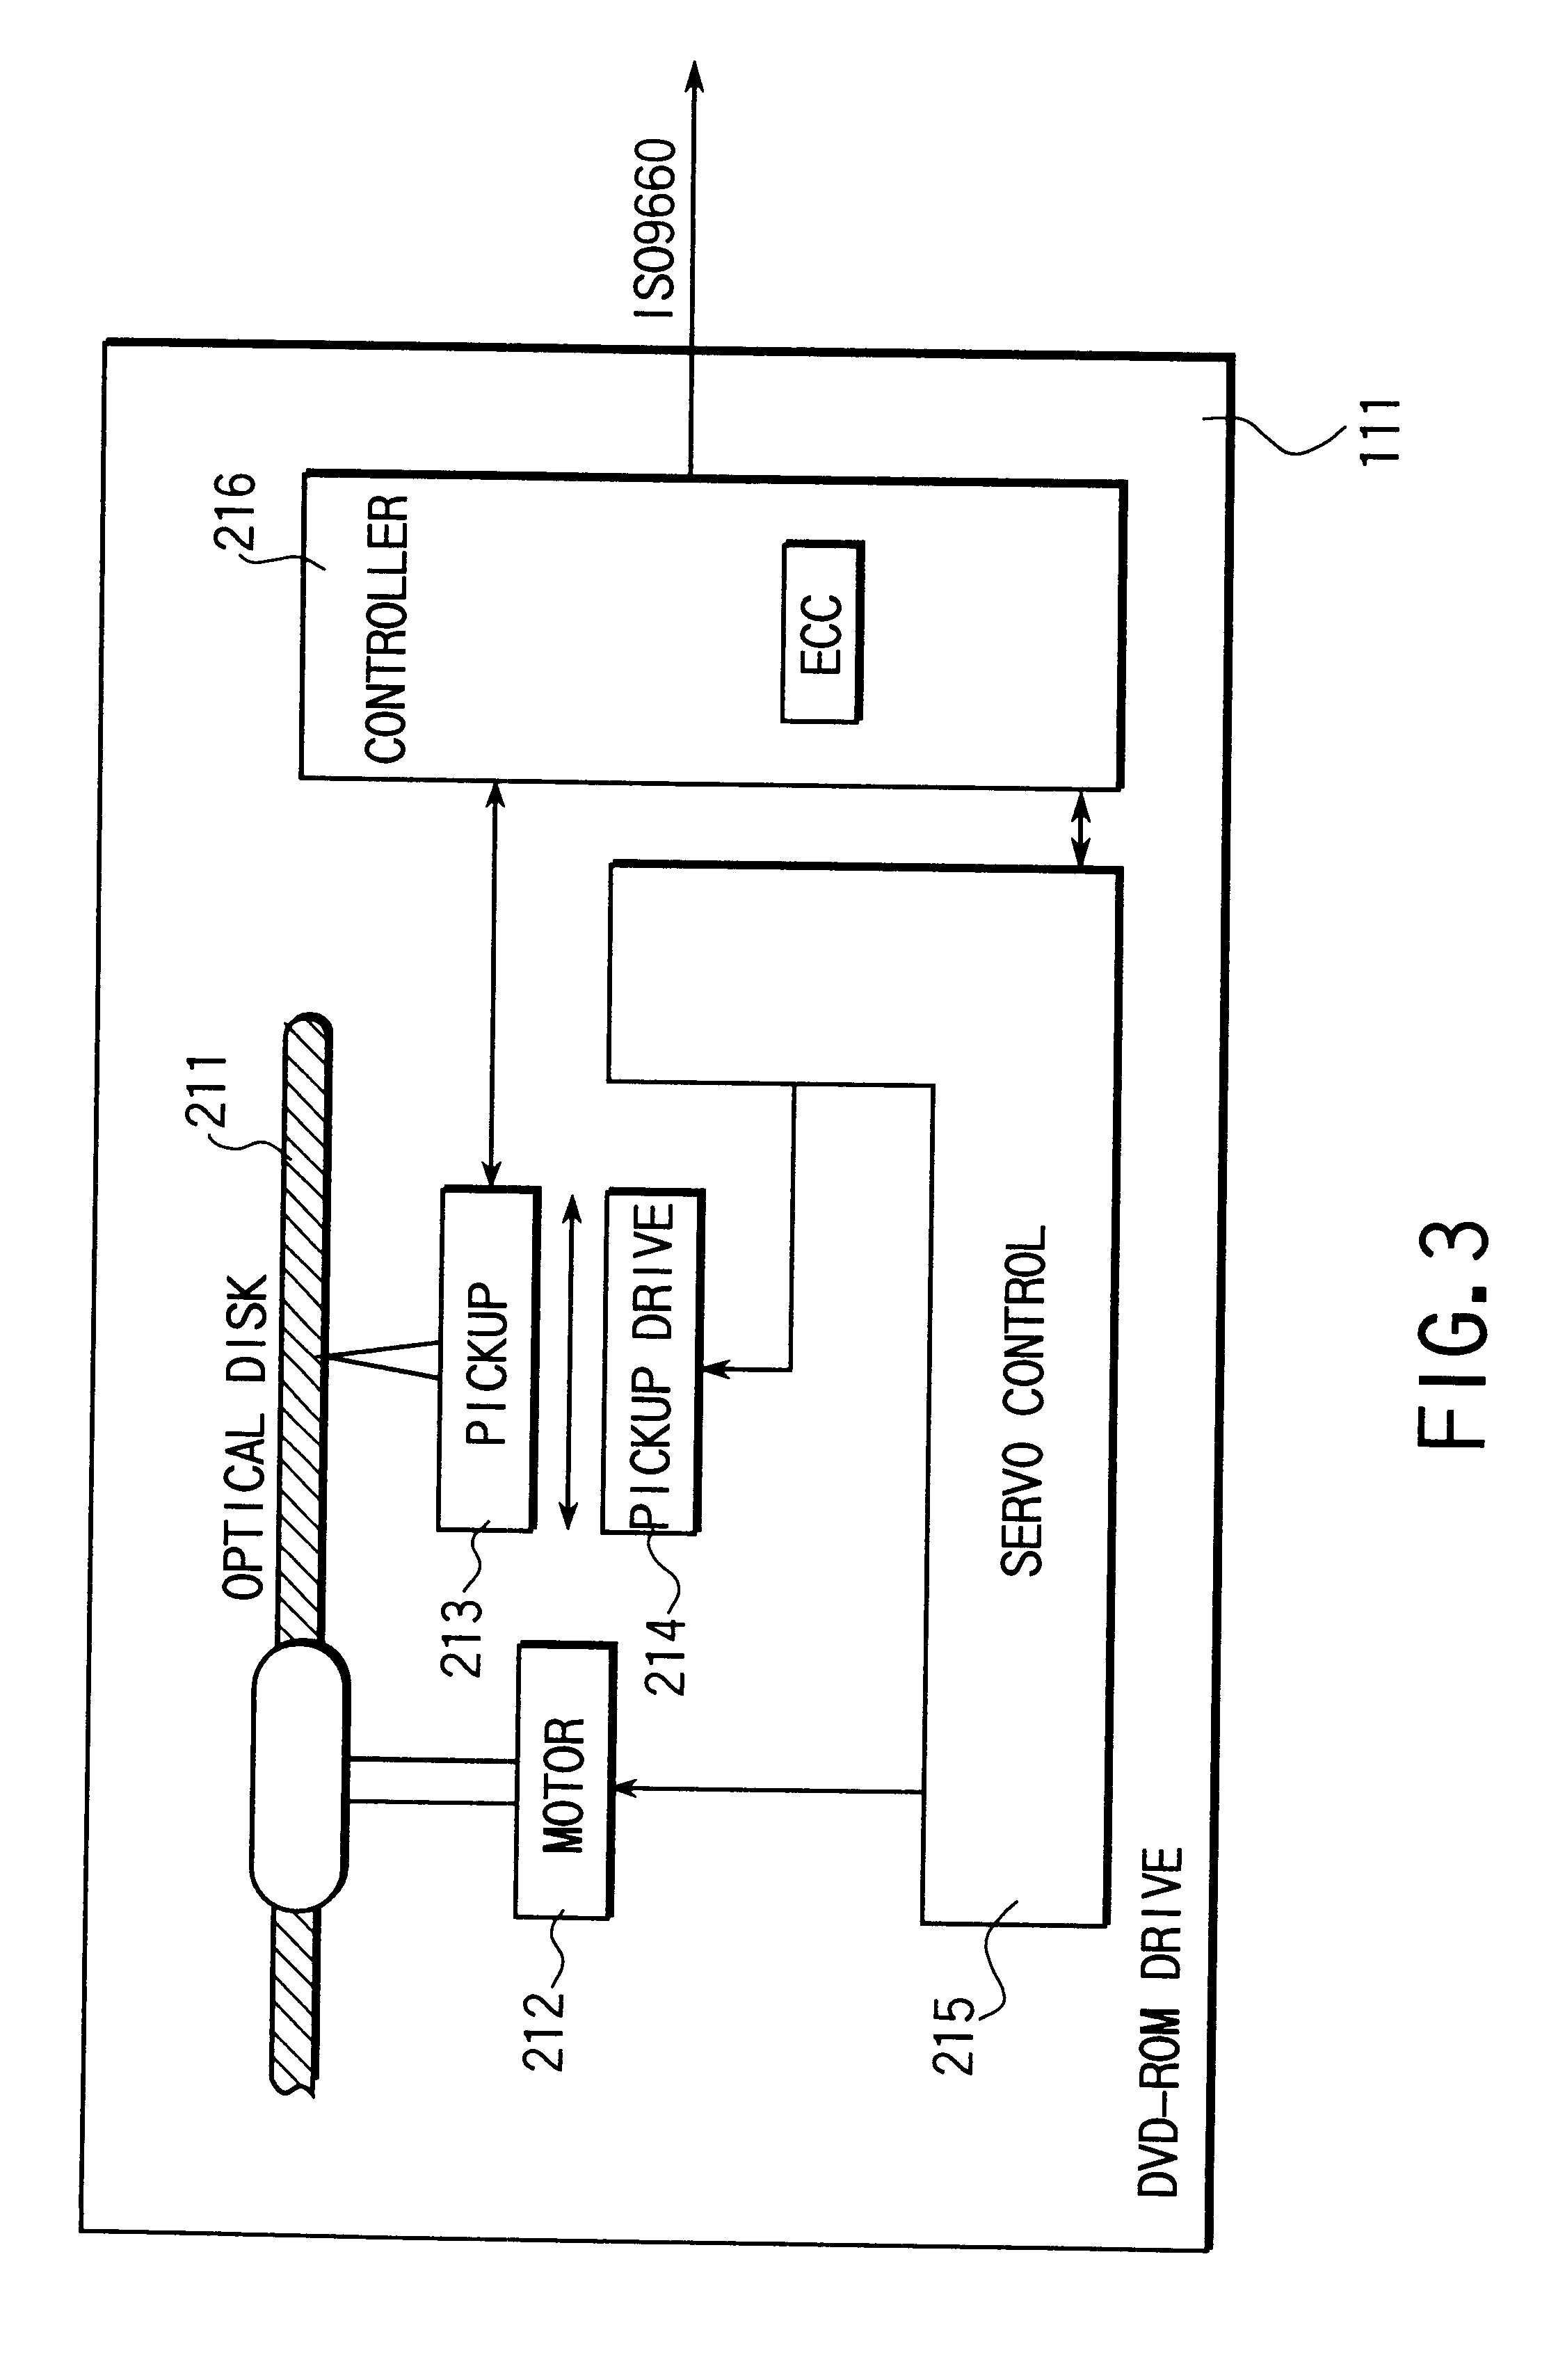 Patent Us6441813 Computer System And Video Decoder Used In The Circuit Diagram For Dvd Servo Control Drawing